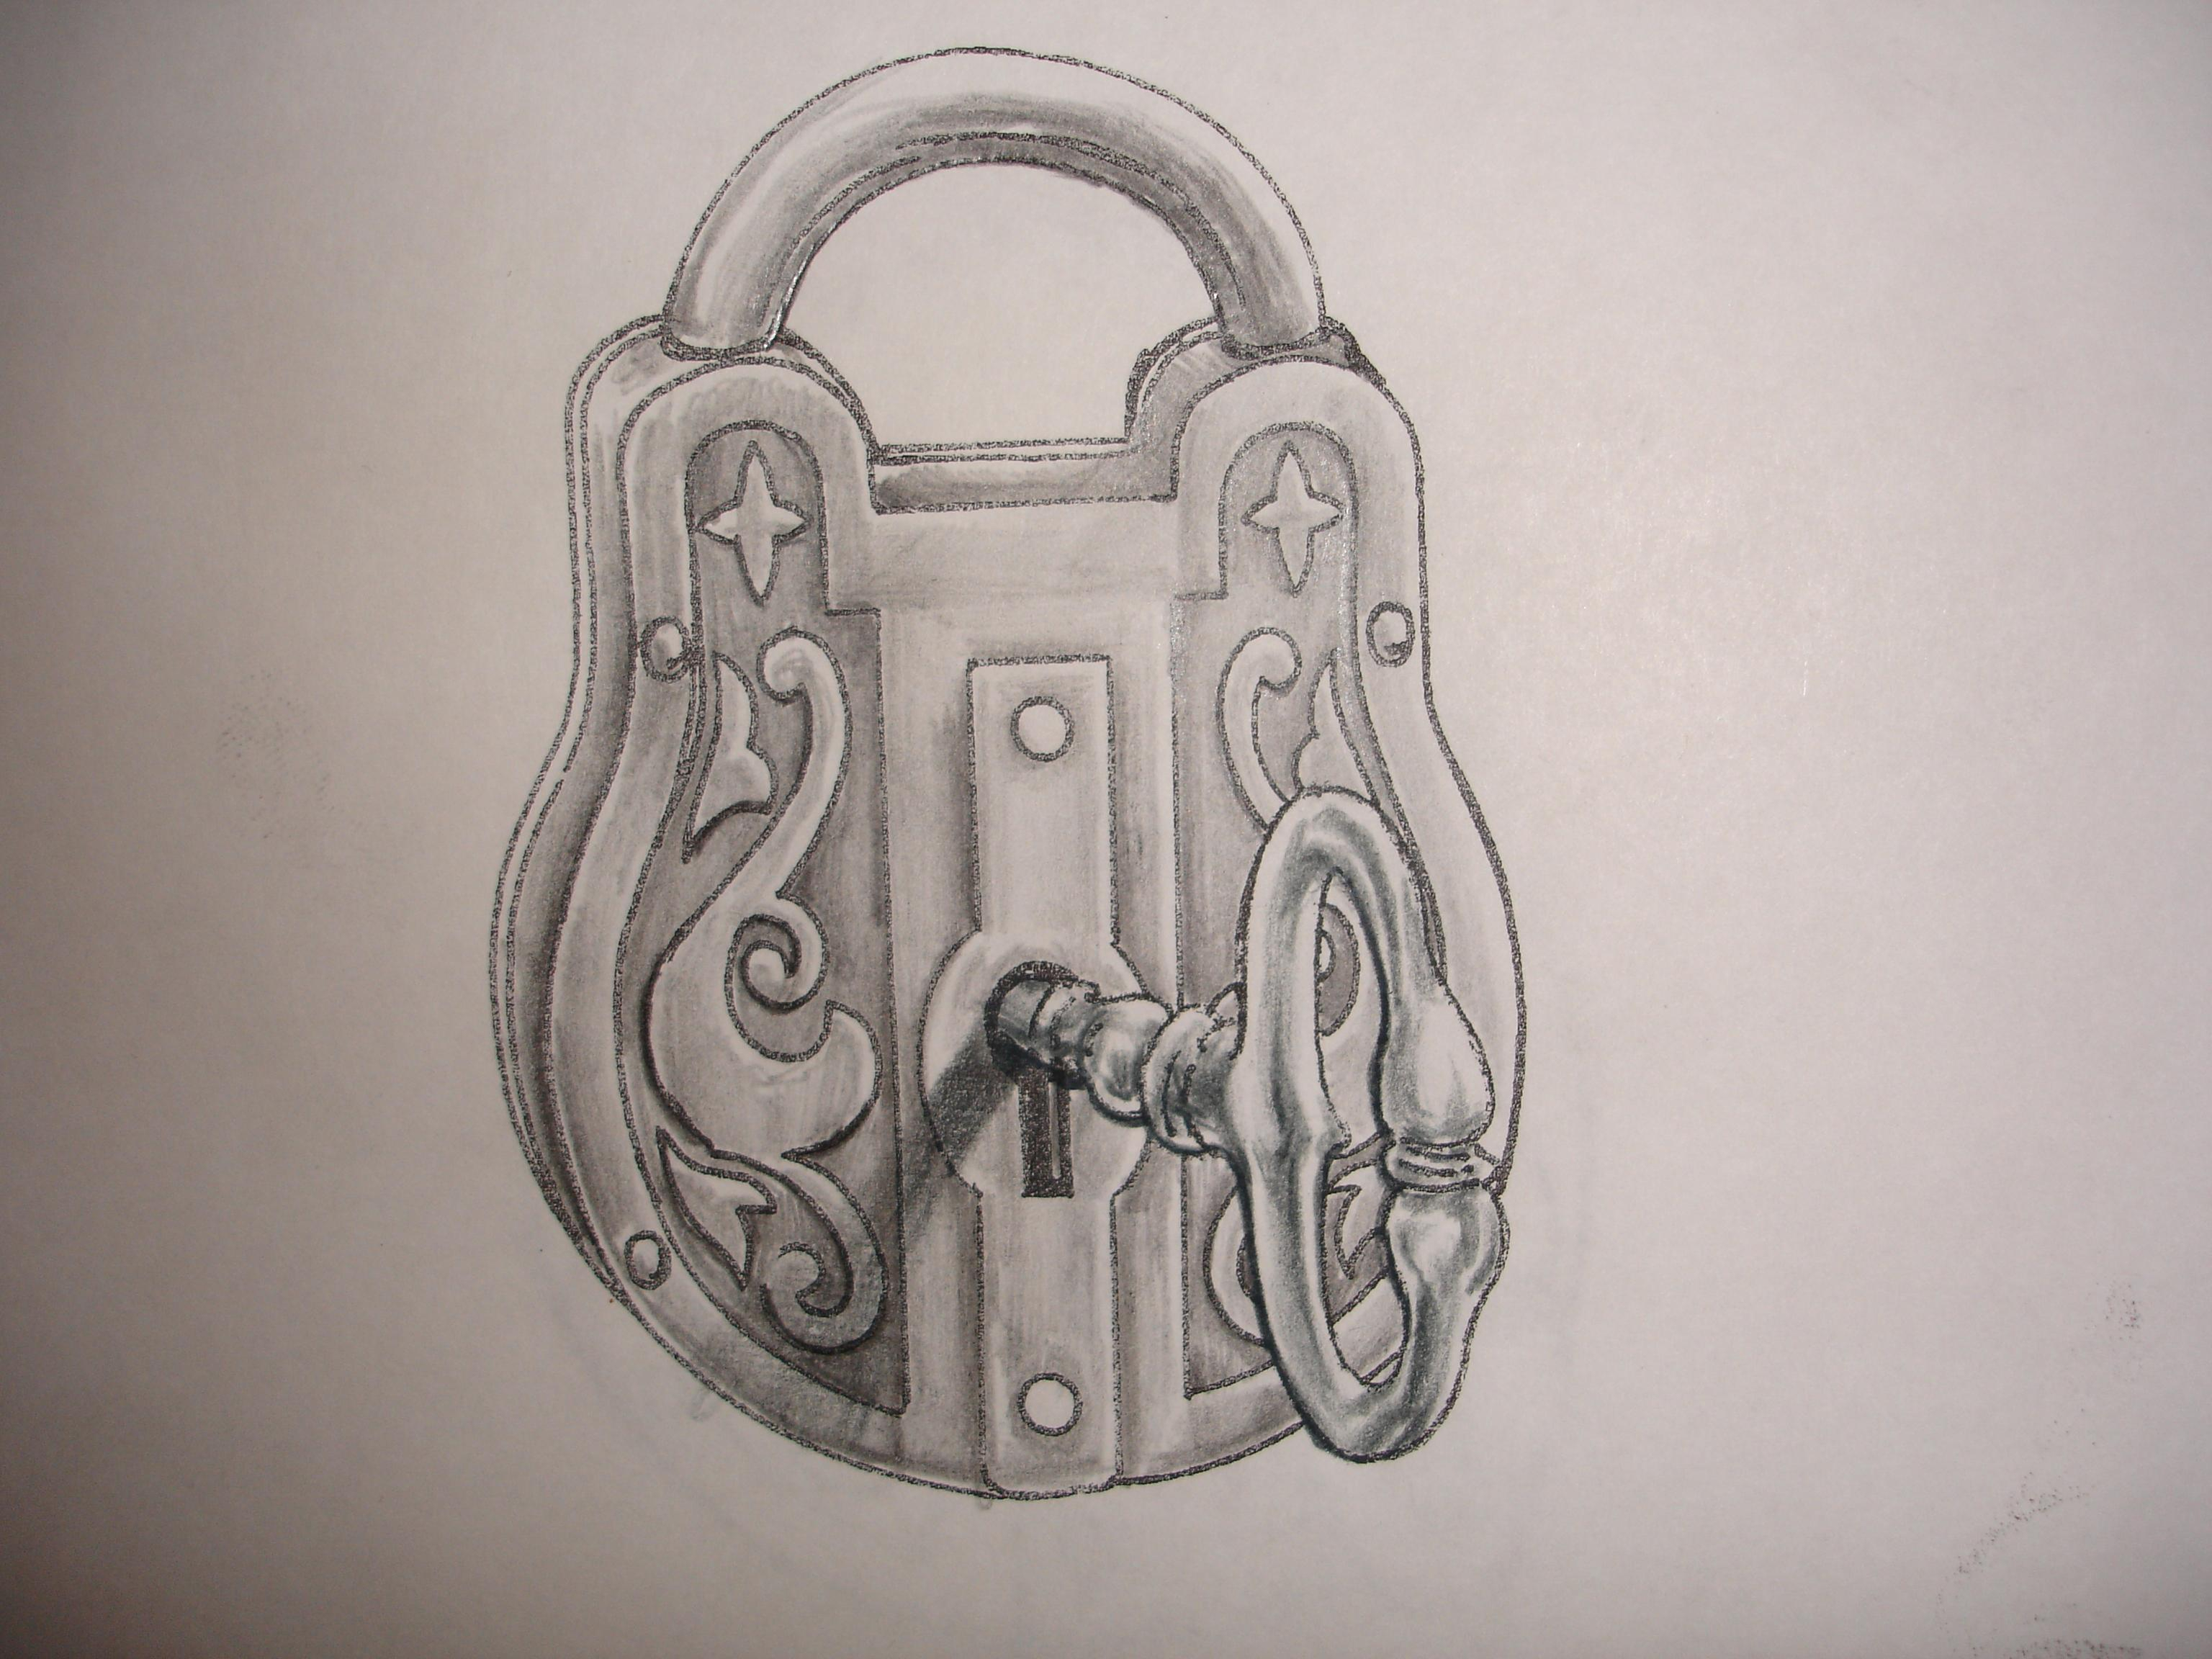 3072x2304 Lock And Key Drawing Adding A Lock And Key To My Tattoo ) For My